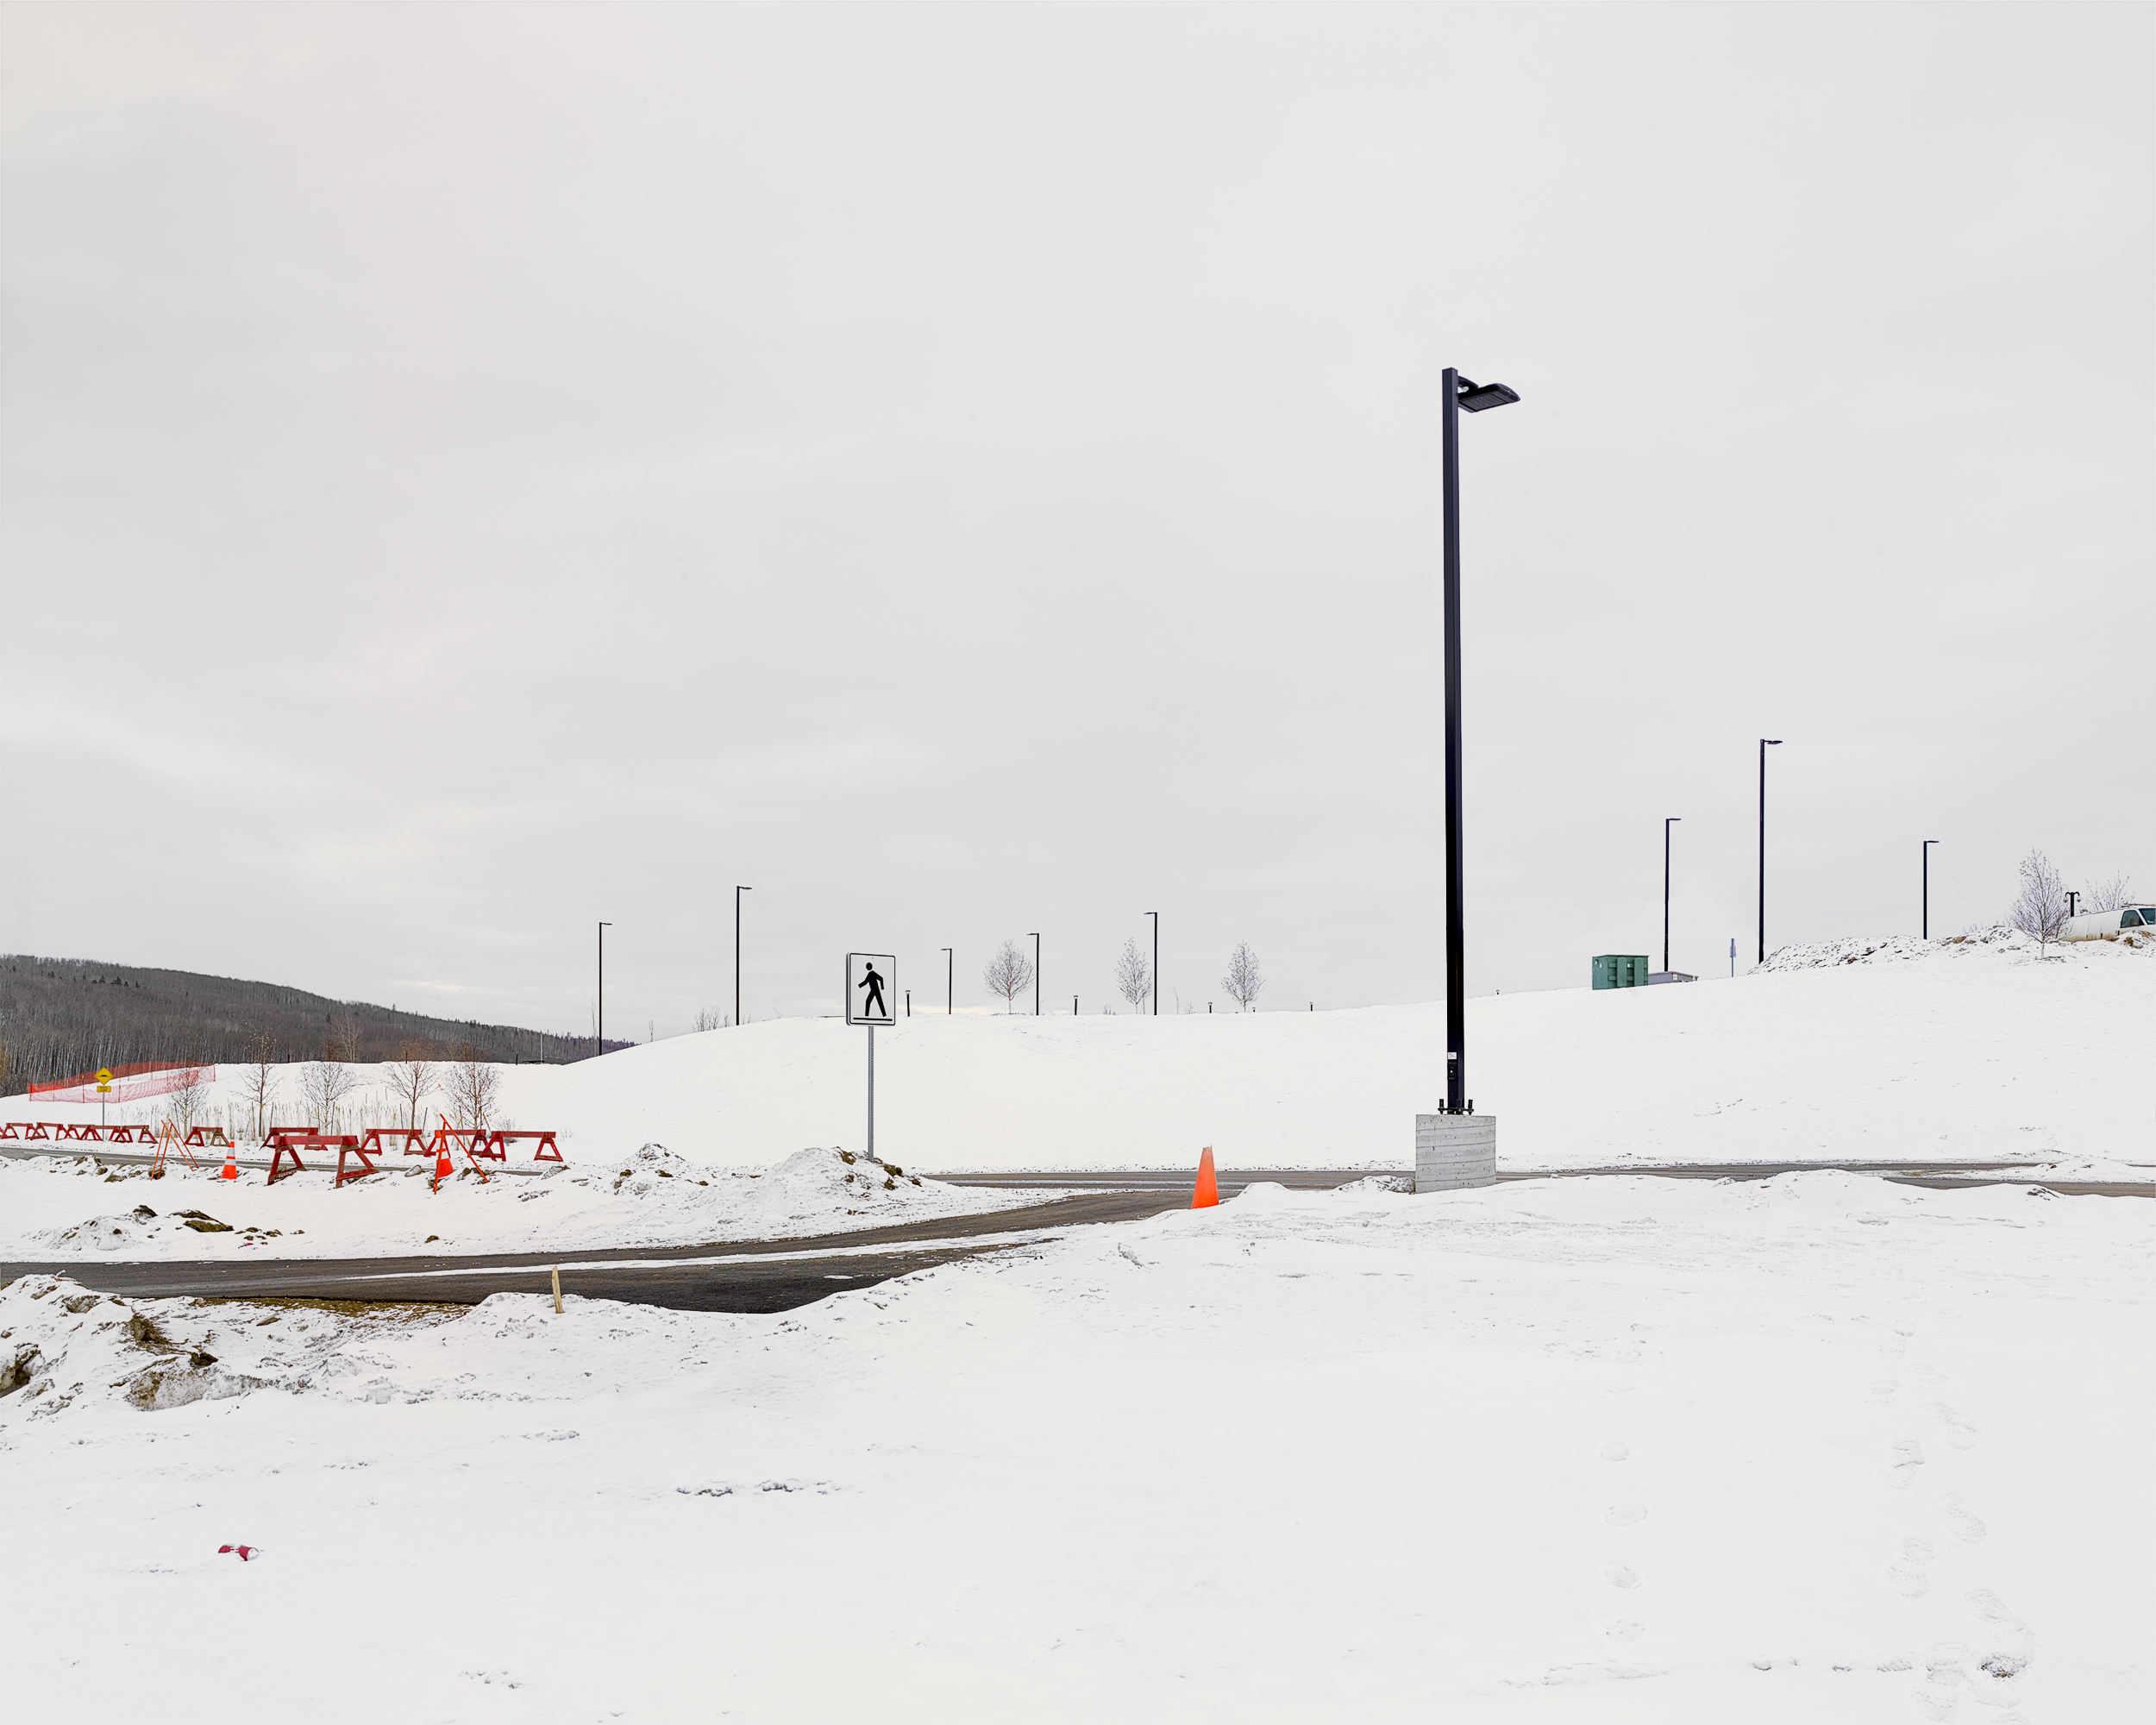 Hardin Road, Fort McMurray, Alberta, Canada. February 2017